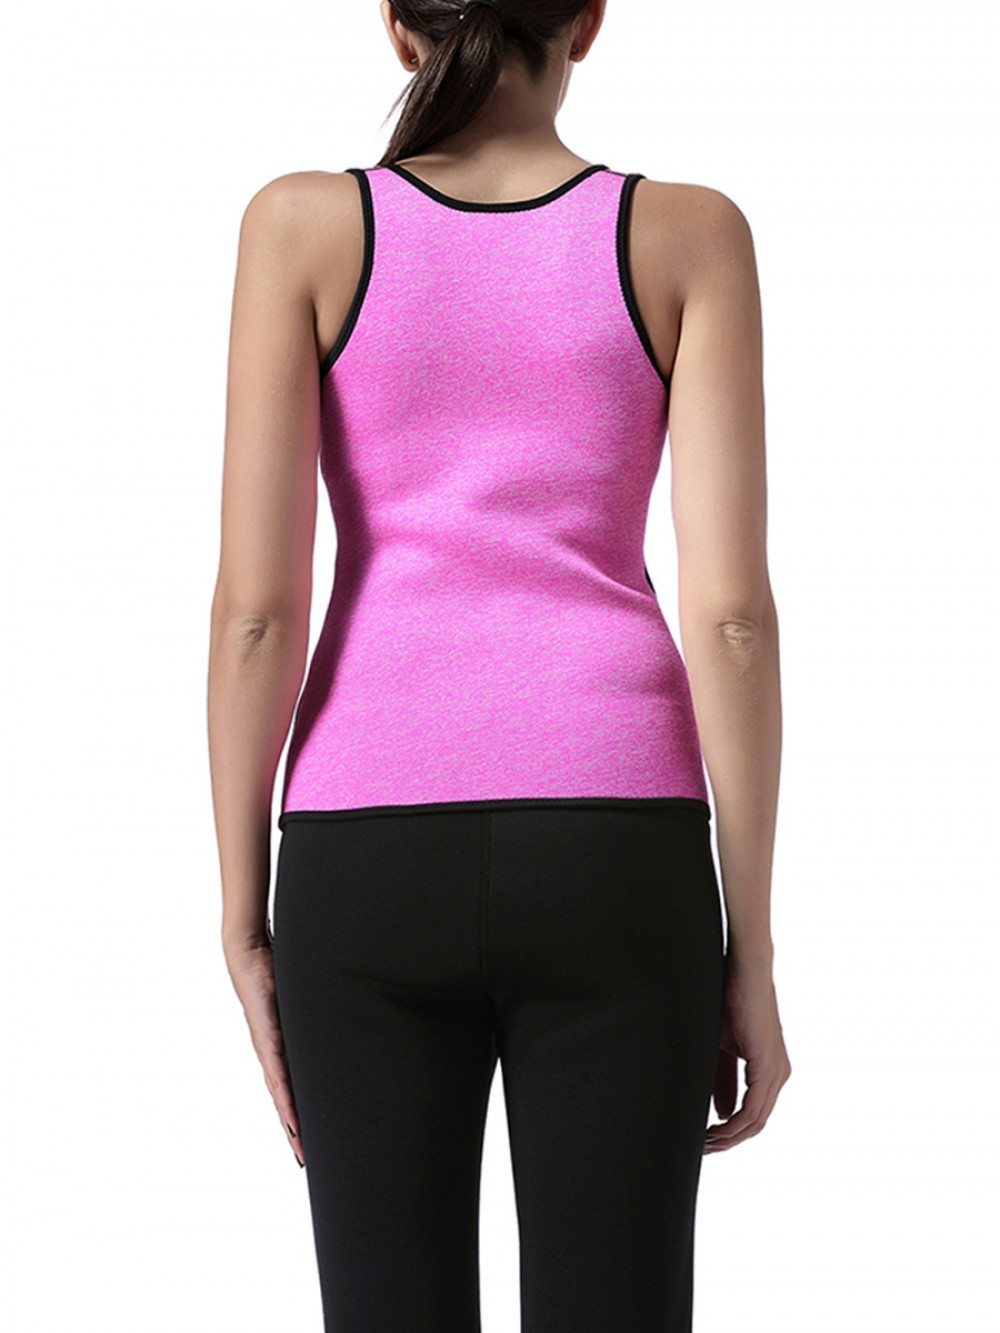 Eye-Catching Pink Neoprene Open Bust Shaper Plus Size Compression